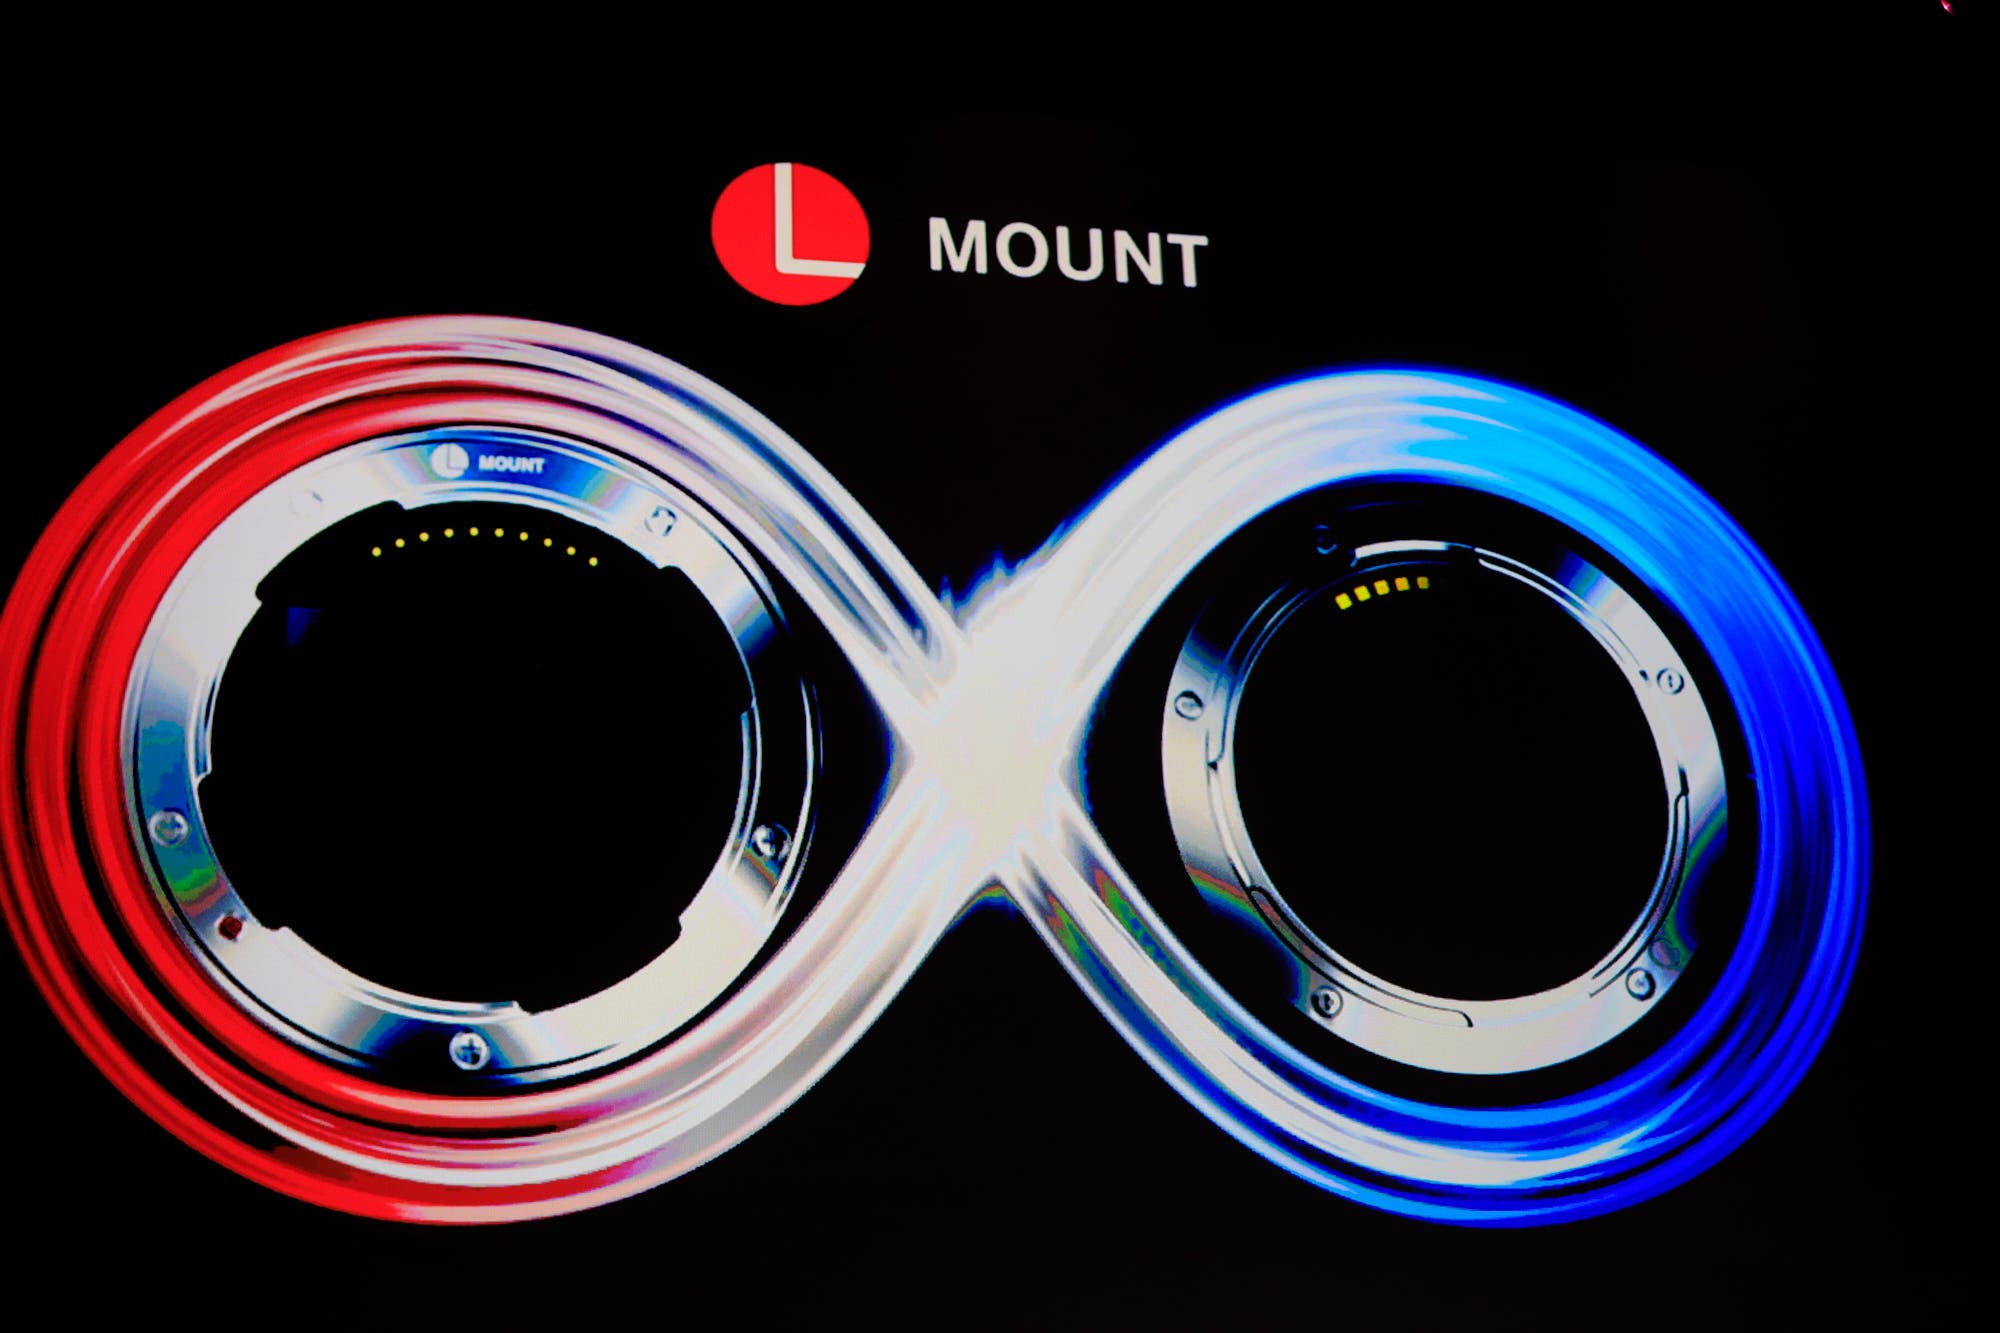 Leica, Panasonic and Sigma Announce New Initiative on the Full Frame L Mount